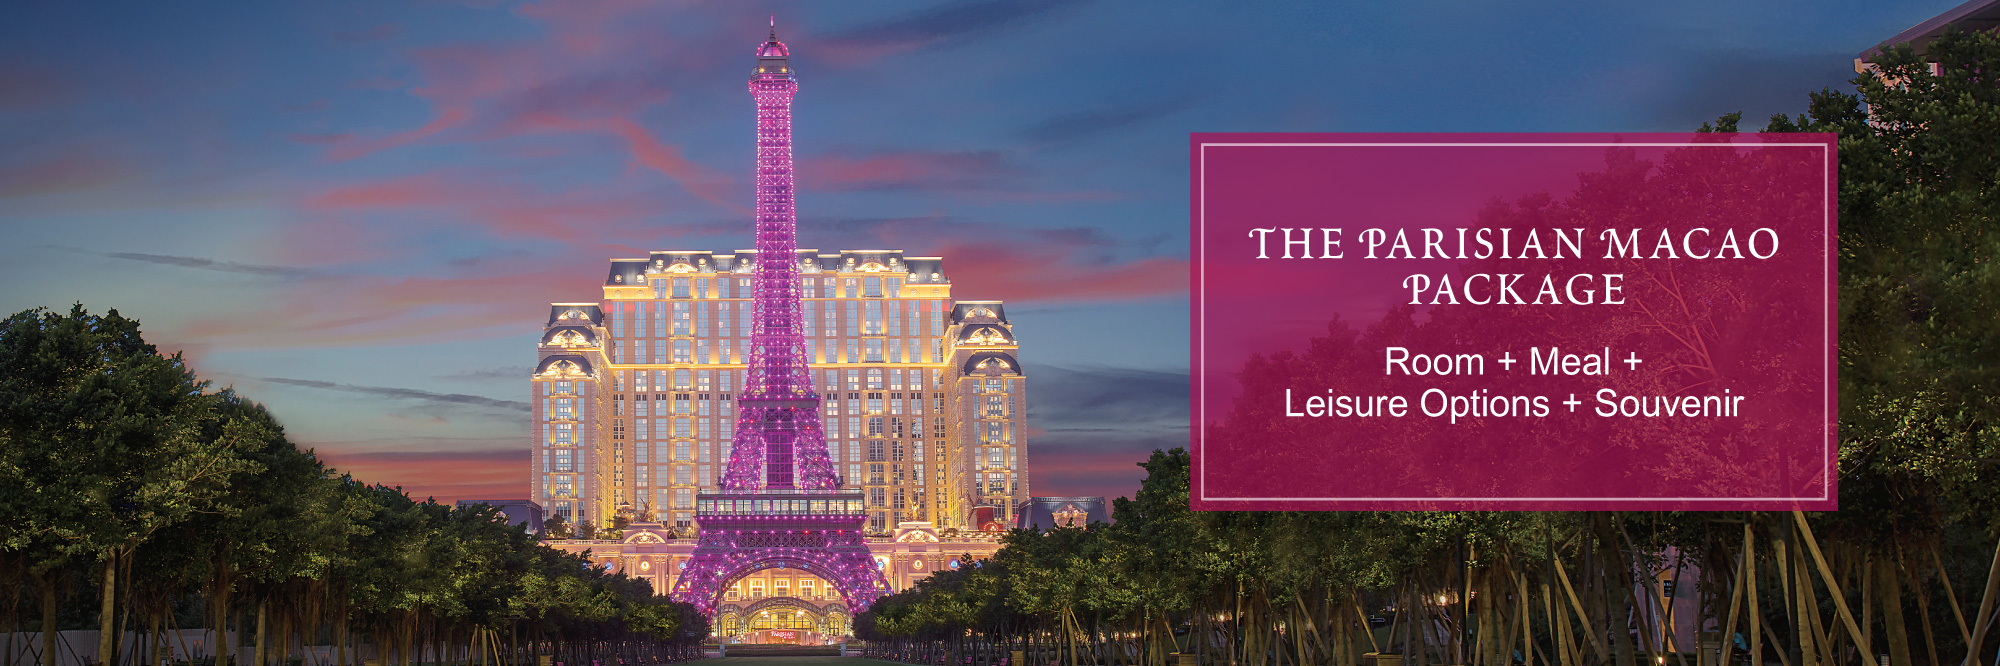 The Parisian Macao Package